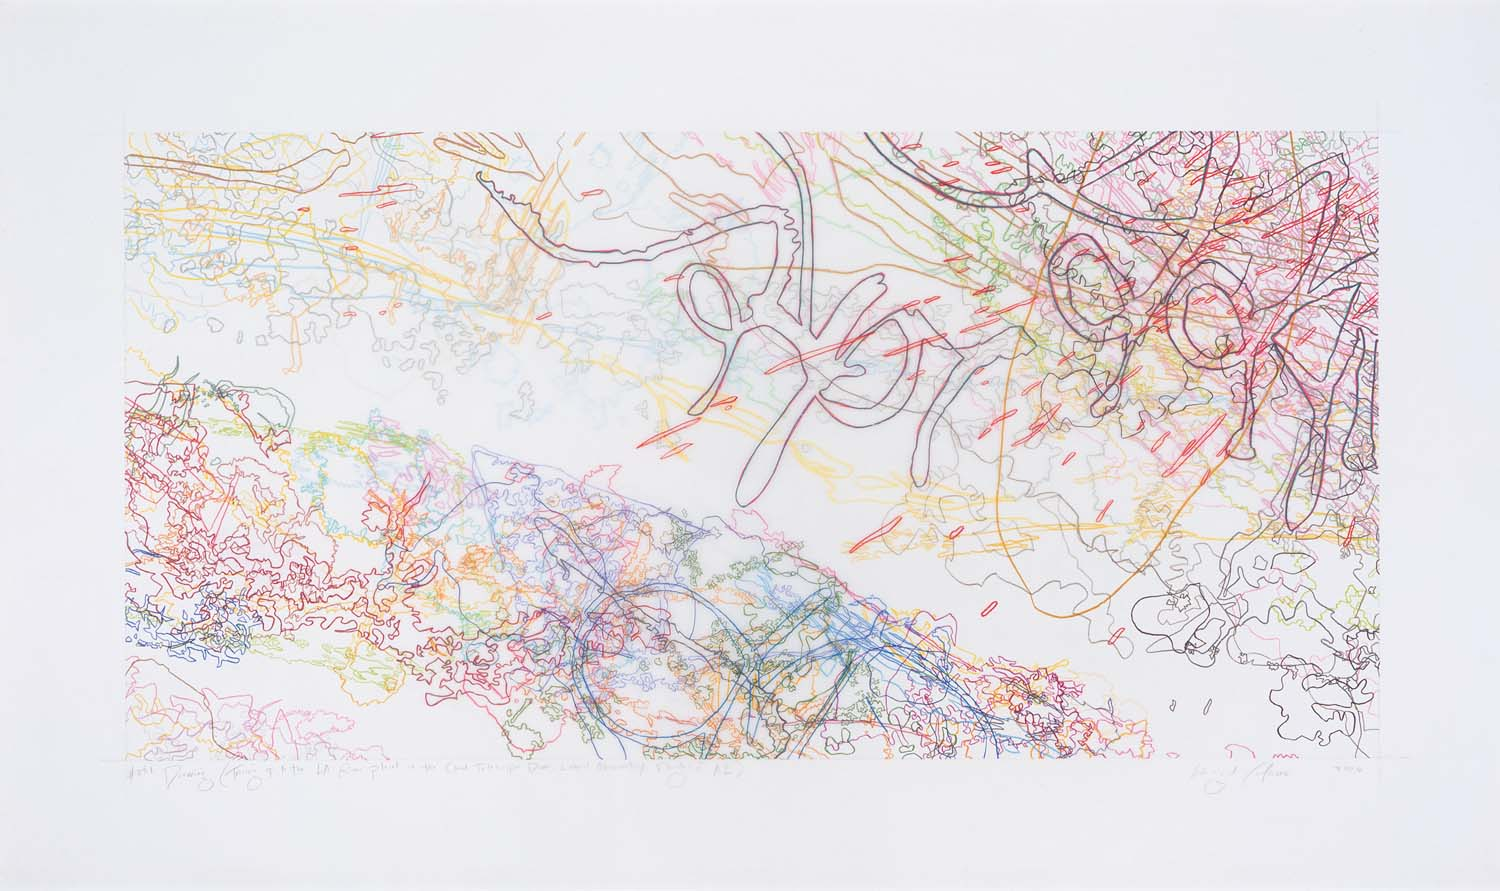 #231 Drawing (Tracings up to the L.A. River placed in the Clark Telescope Dome,  Lowell Observatory, Flagstaff, AZ)